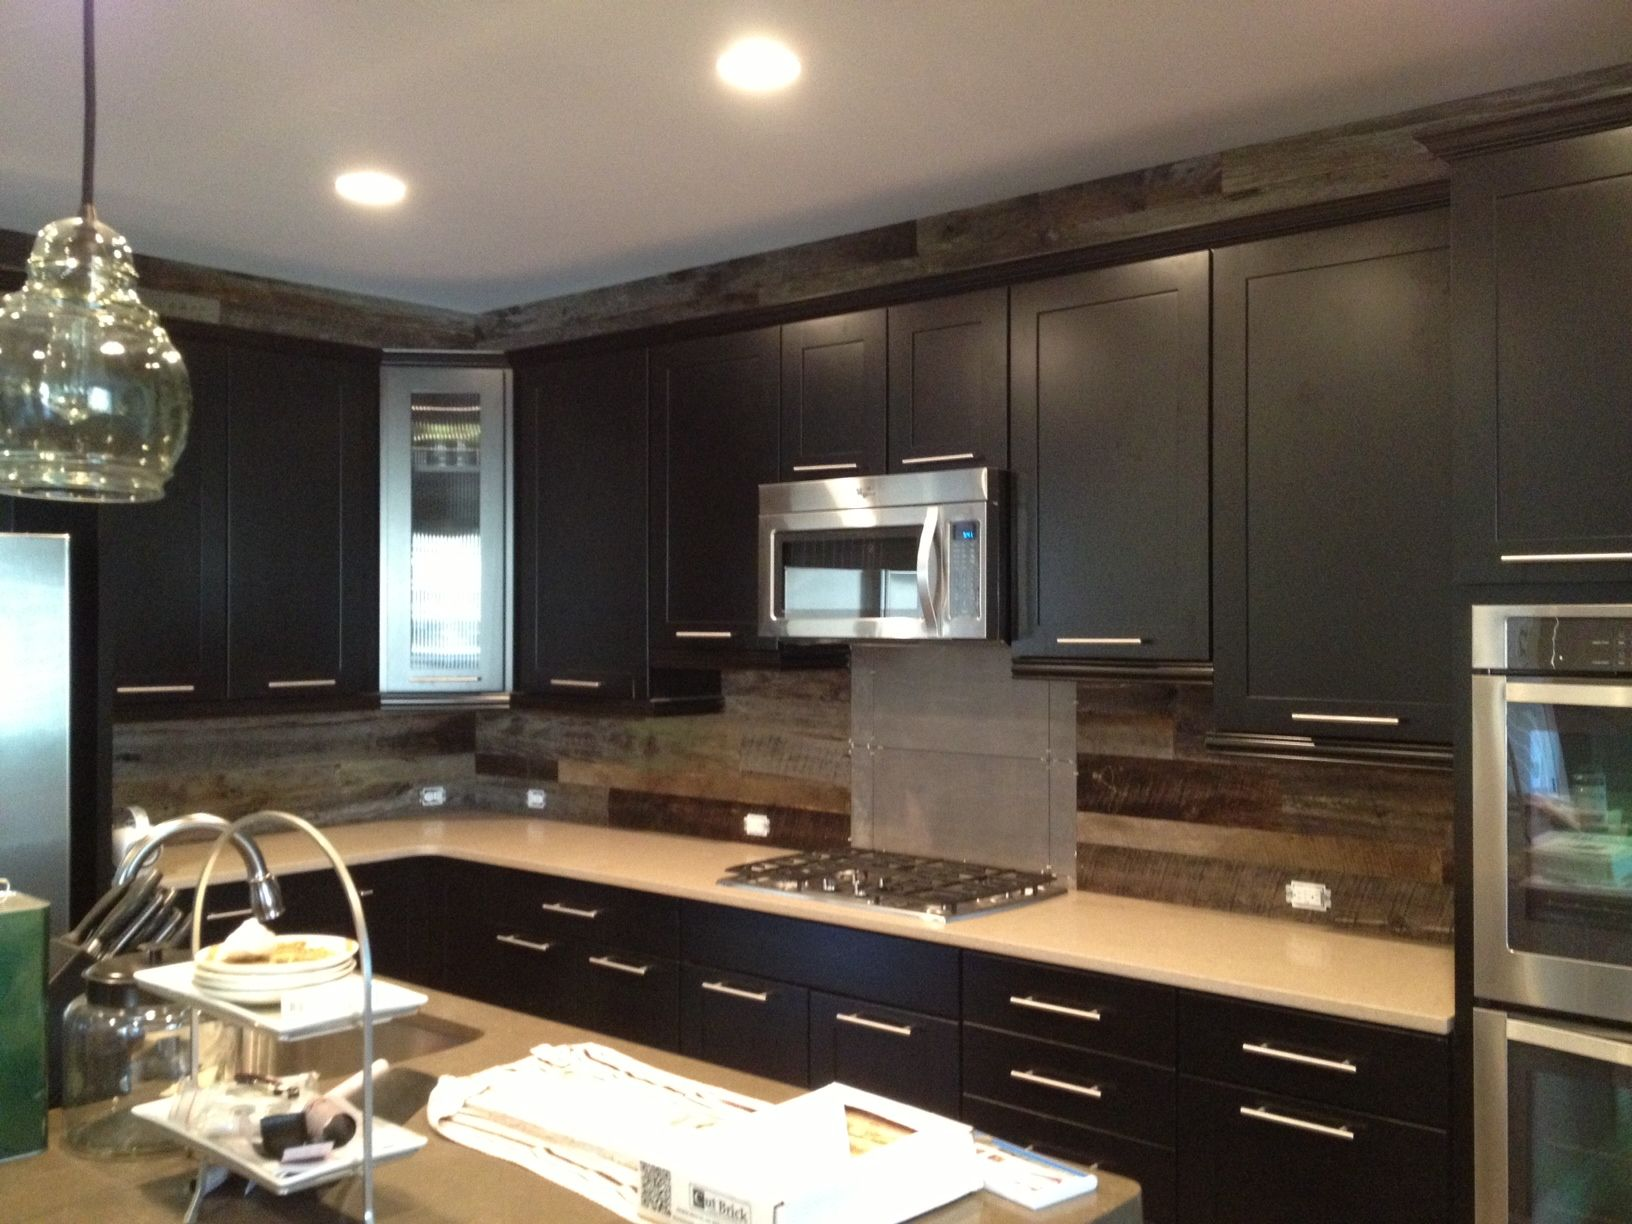 Barn Board Kitchen Cabinets Barn Board Siding Is A Great Choice For The Backsplash And